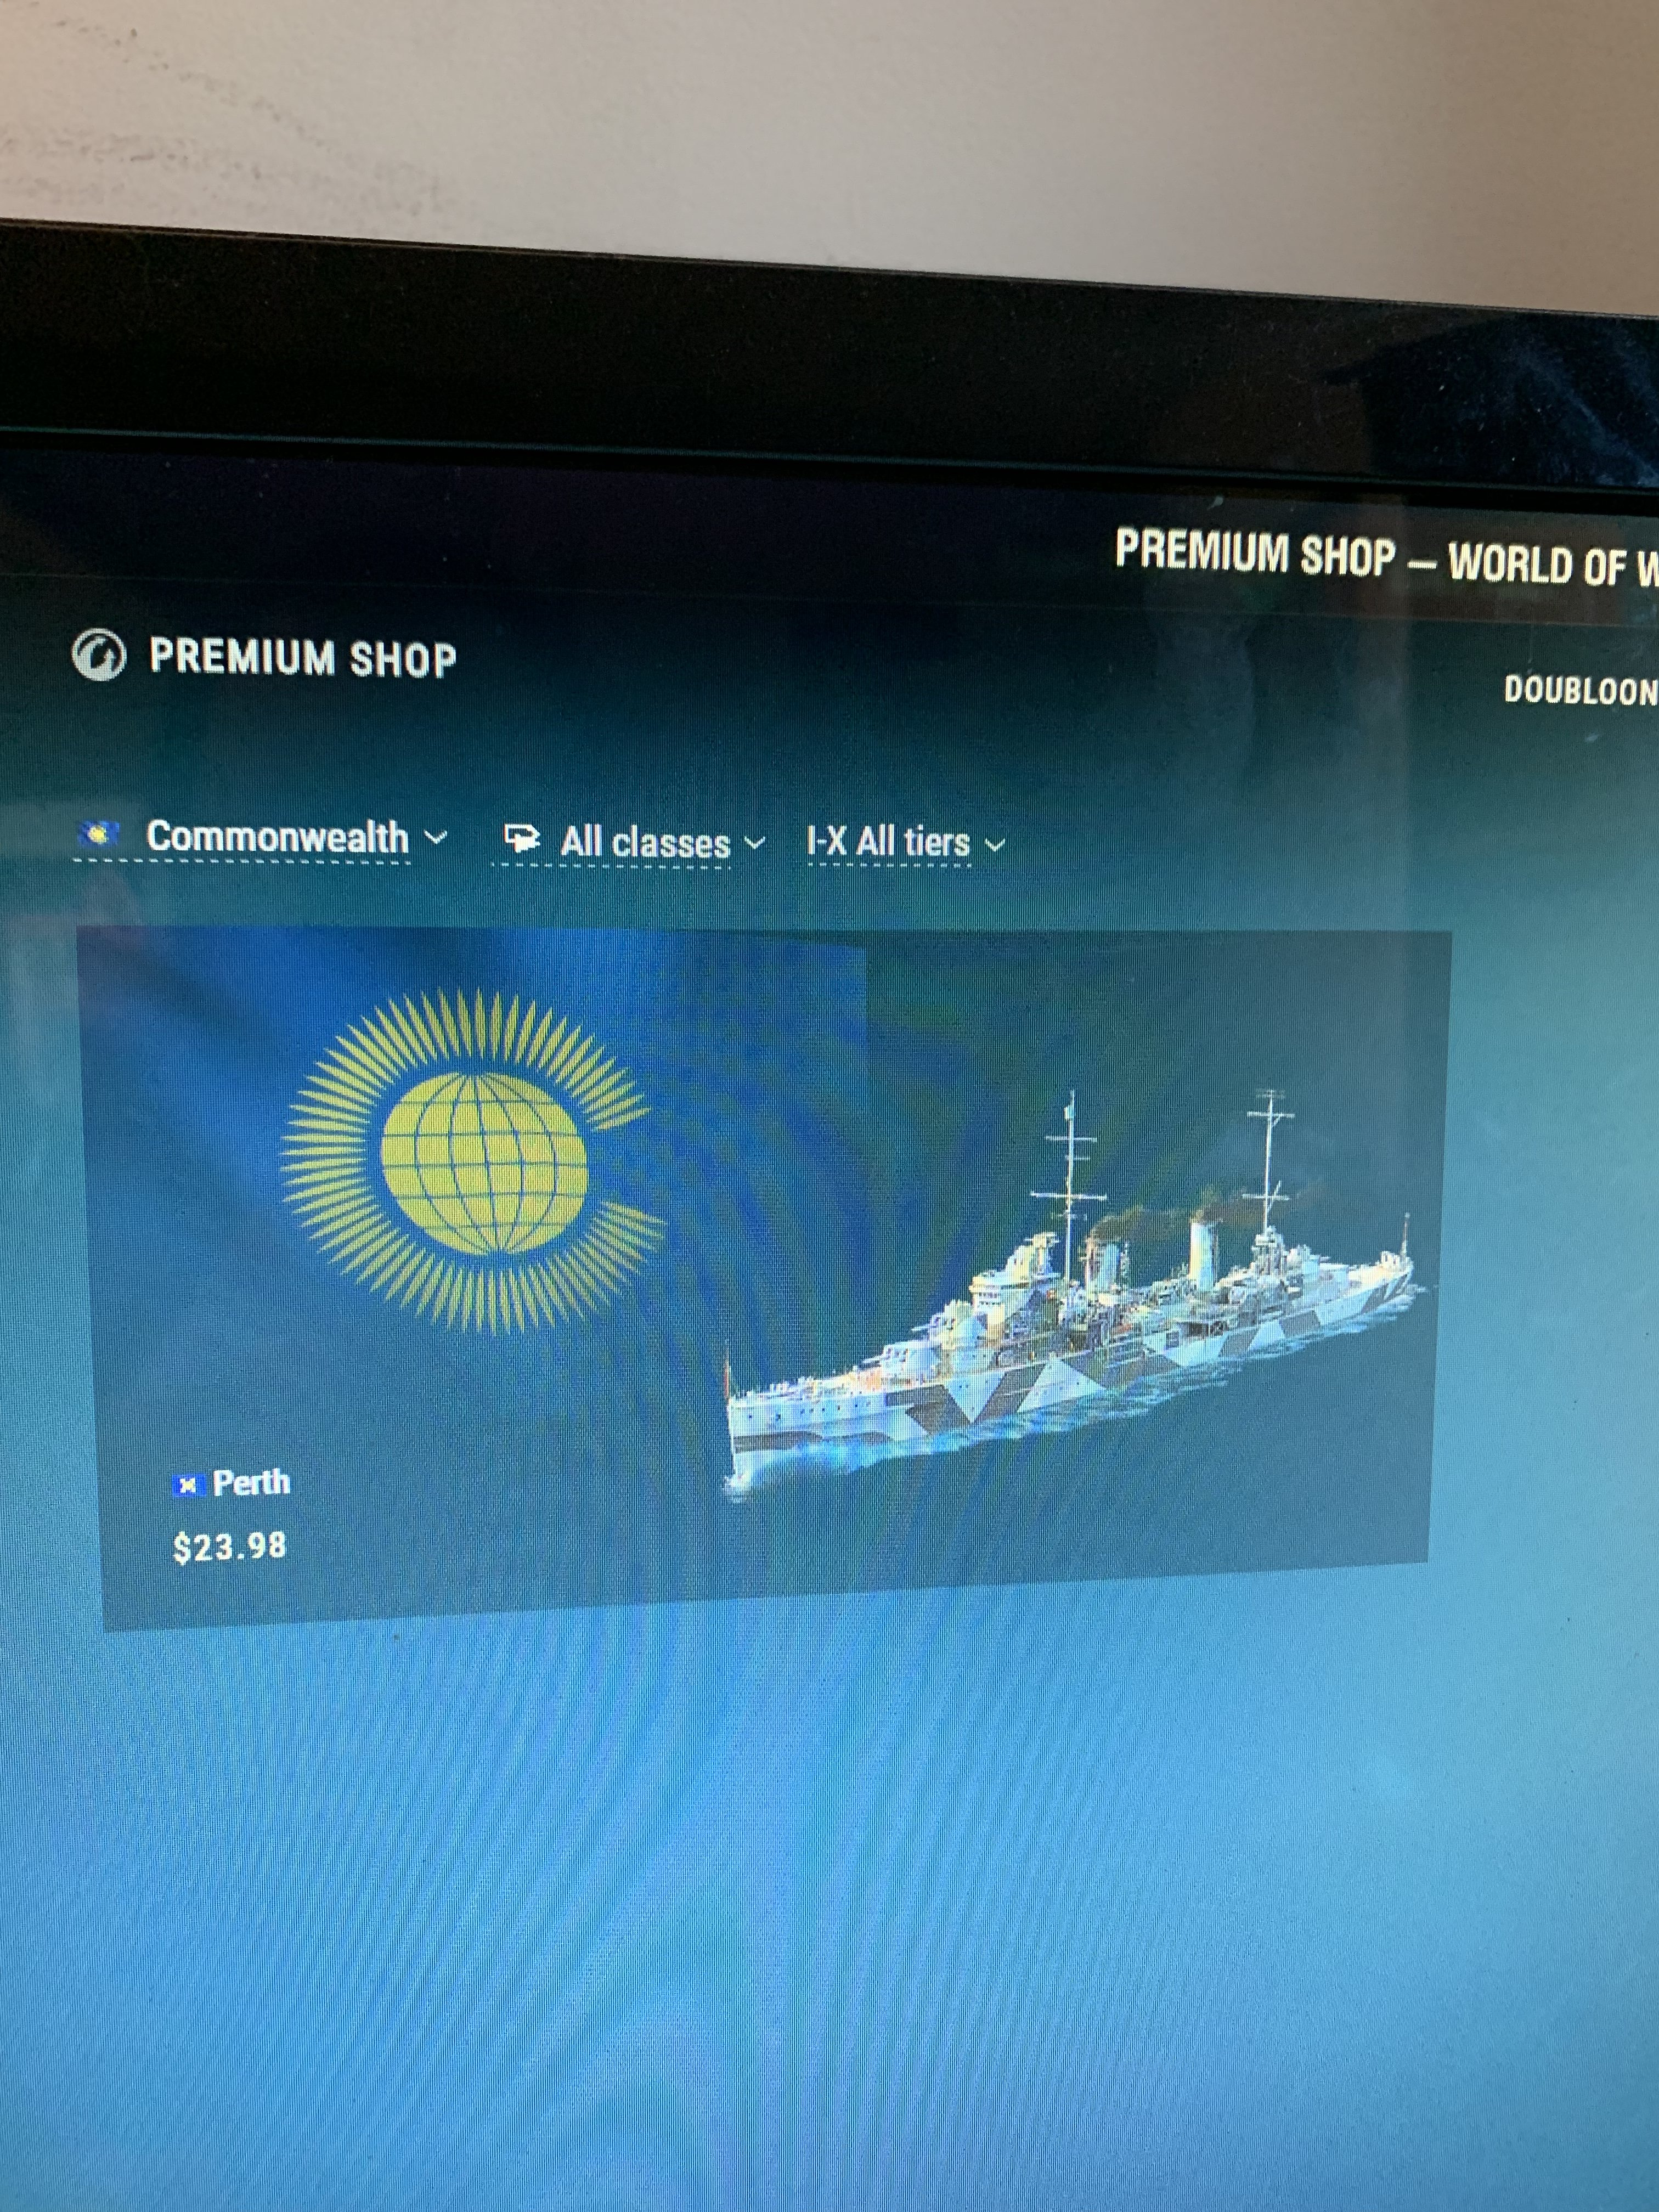 Premium Shop Issue - Support - World of Warships official forum